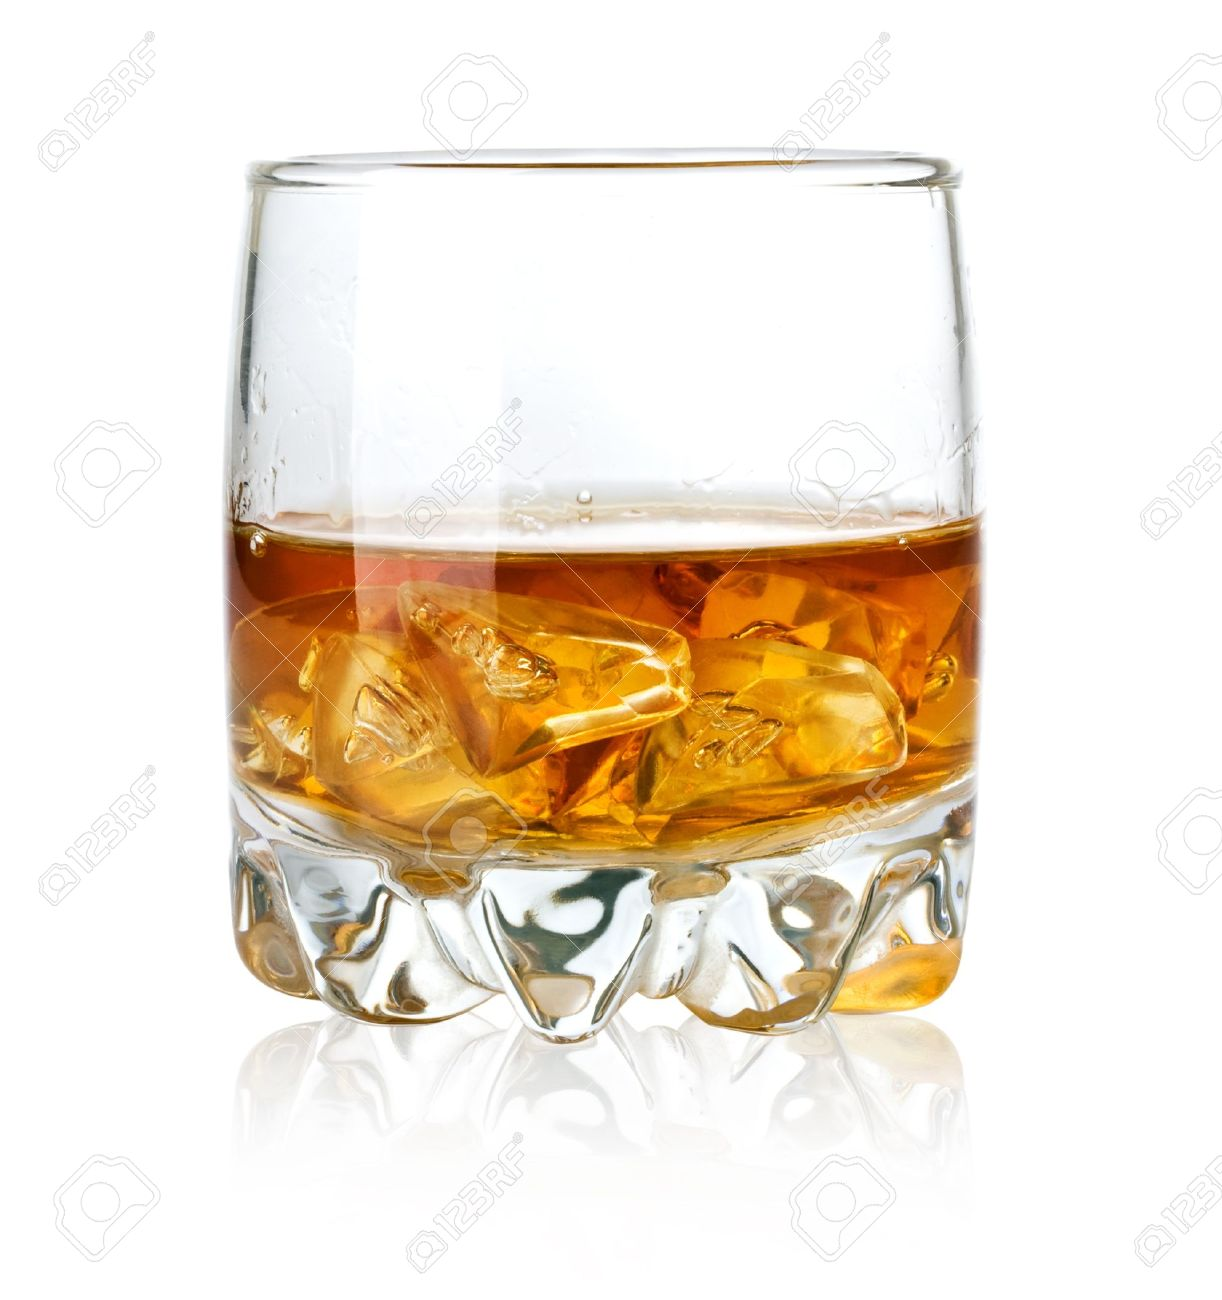 Wisky Glas Whisky Glass And Ice Isolated On White Background